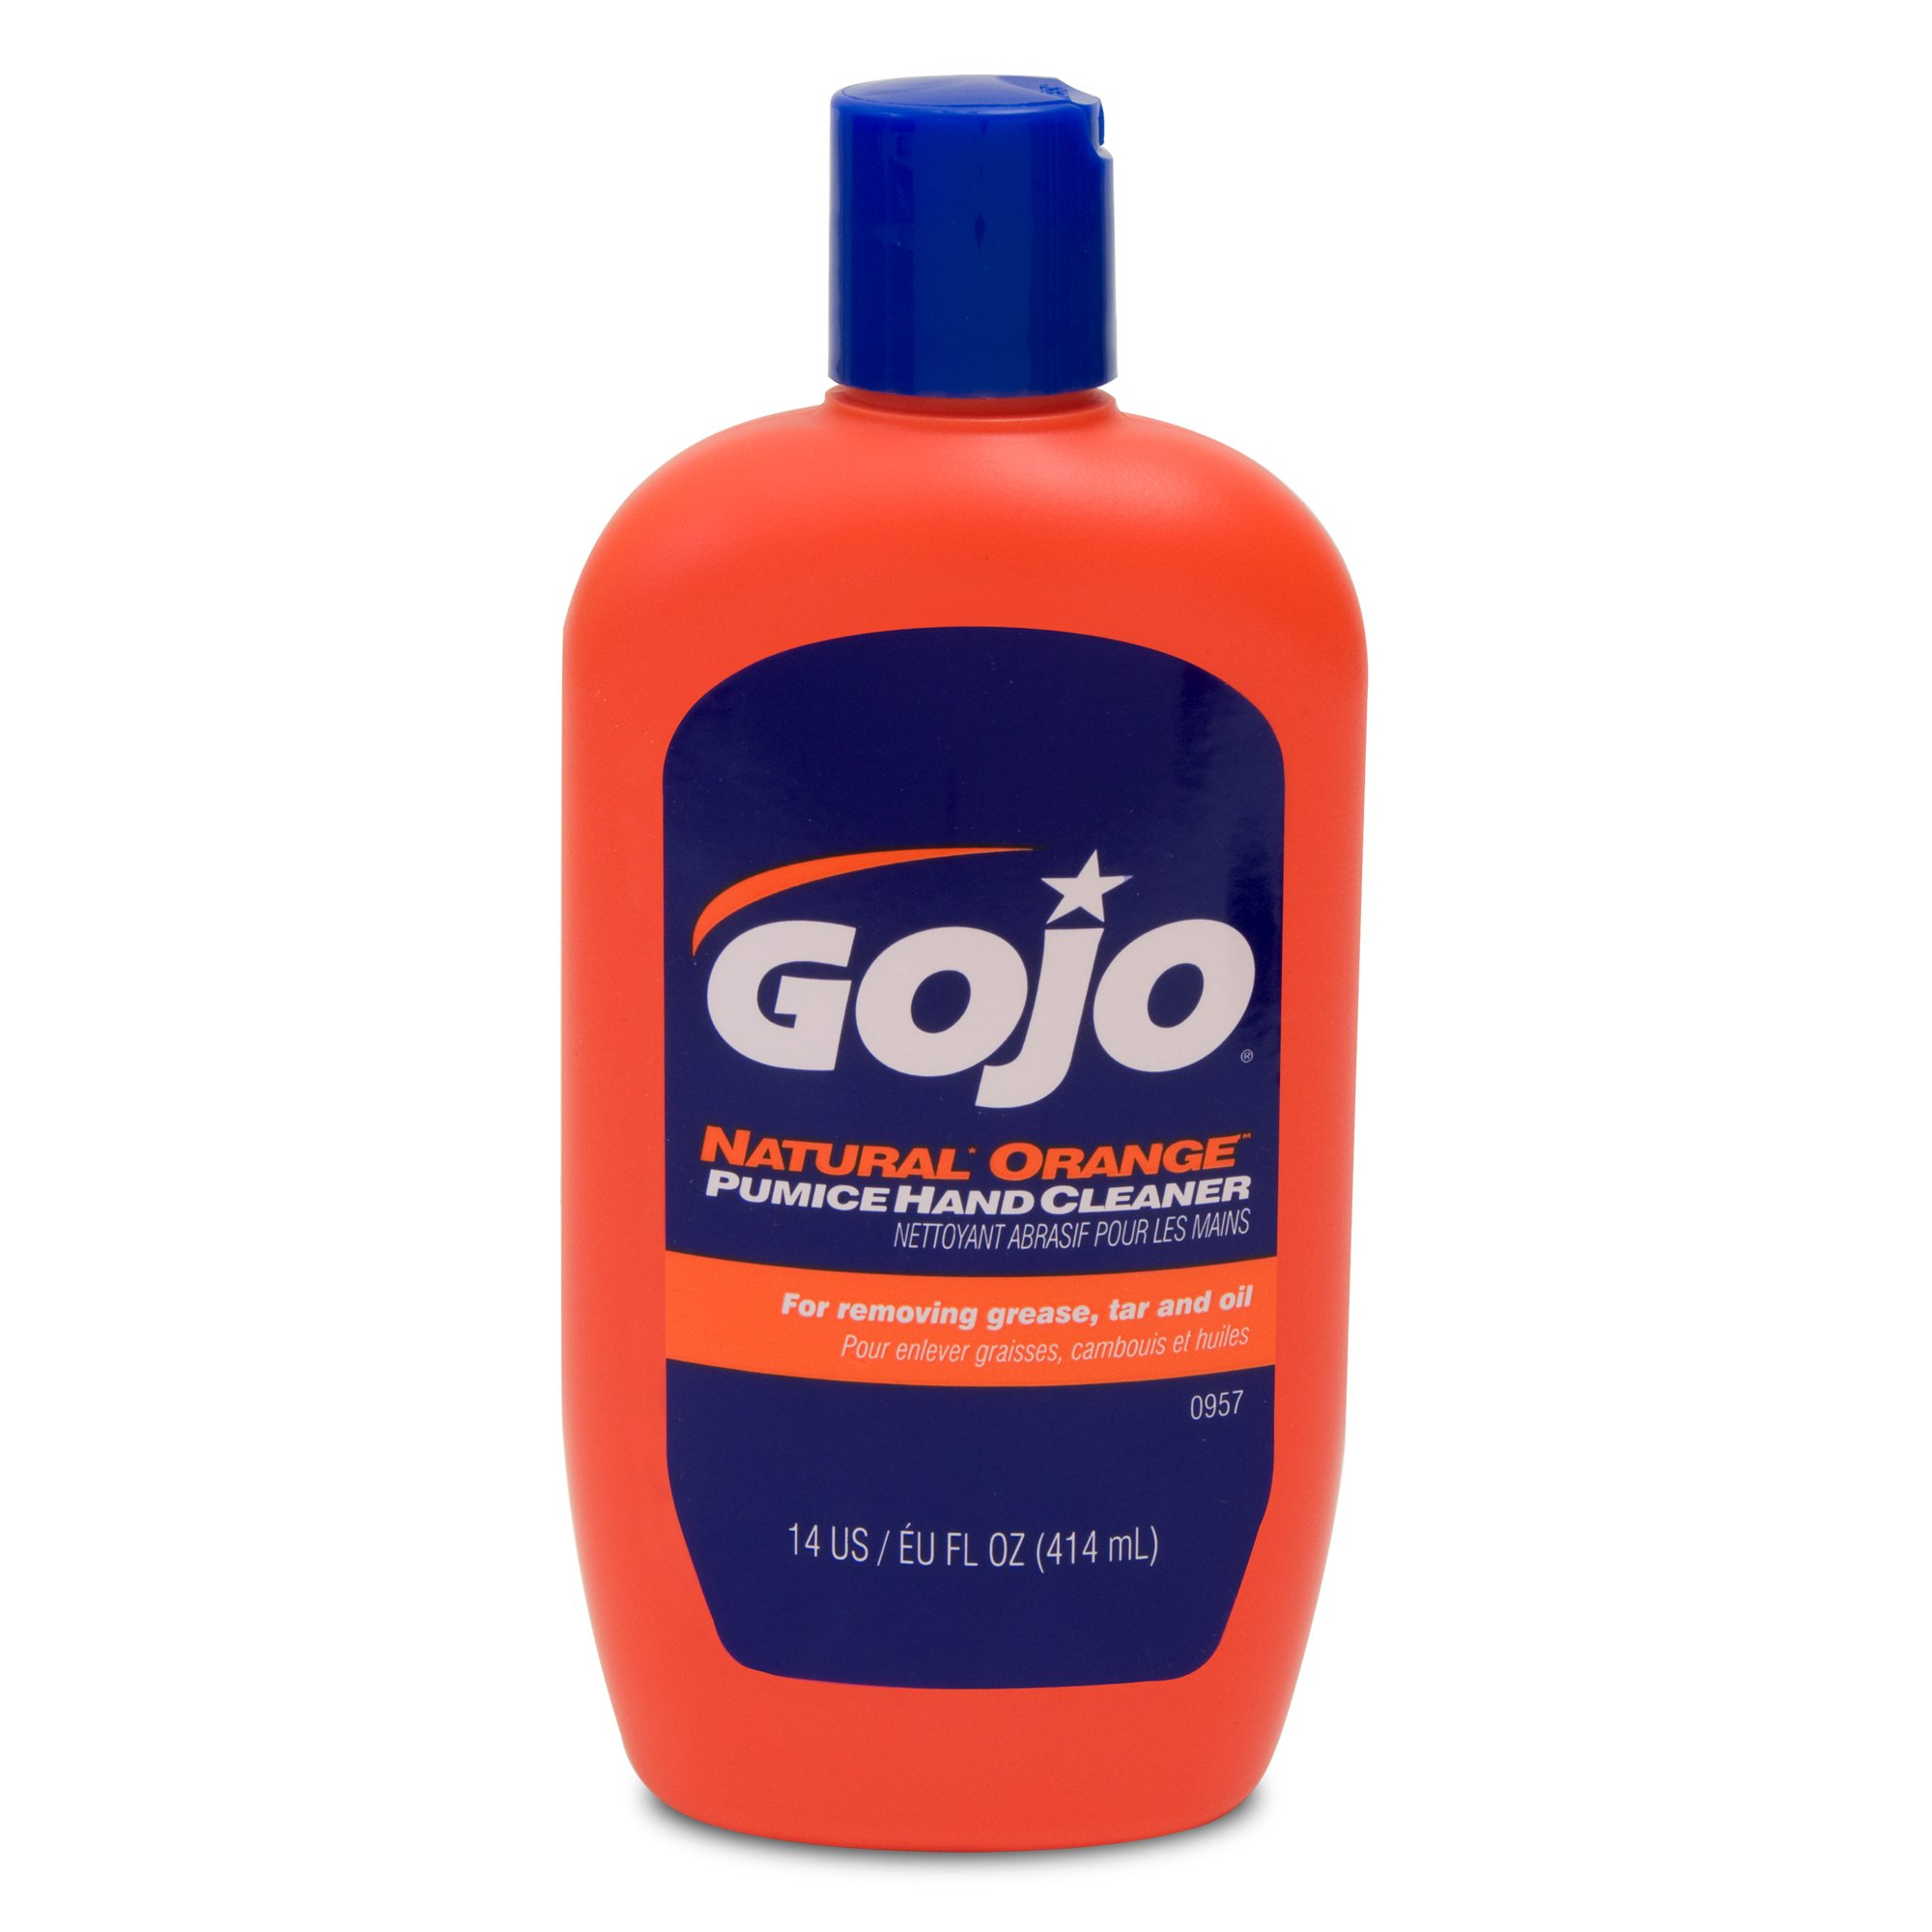 GOJO NATURAL ORANGE Pumice Hand Cleaner, 14 fl oz Quick-Acting Lotion Cleaner Squeeze Bottle (0957-12)